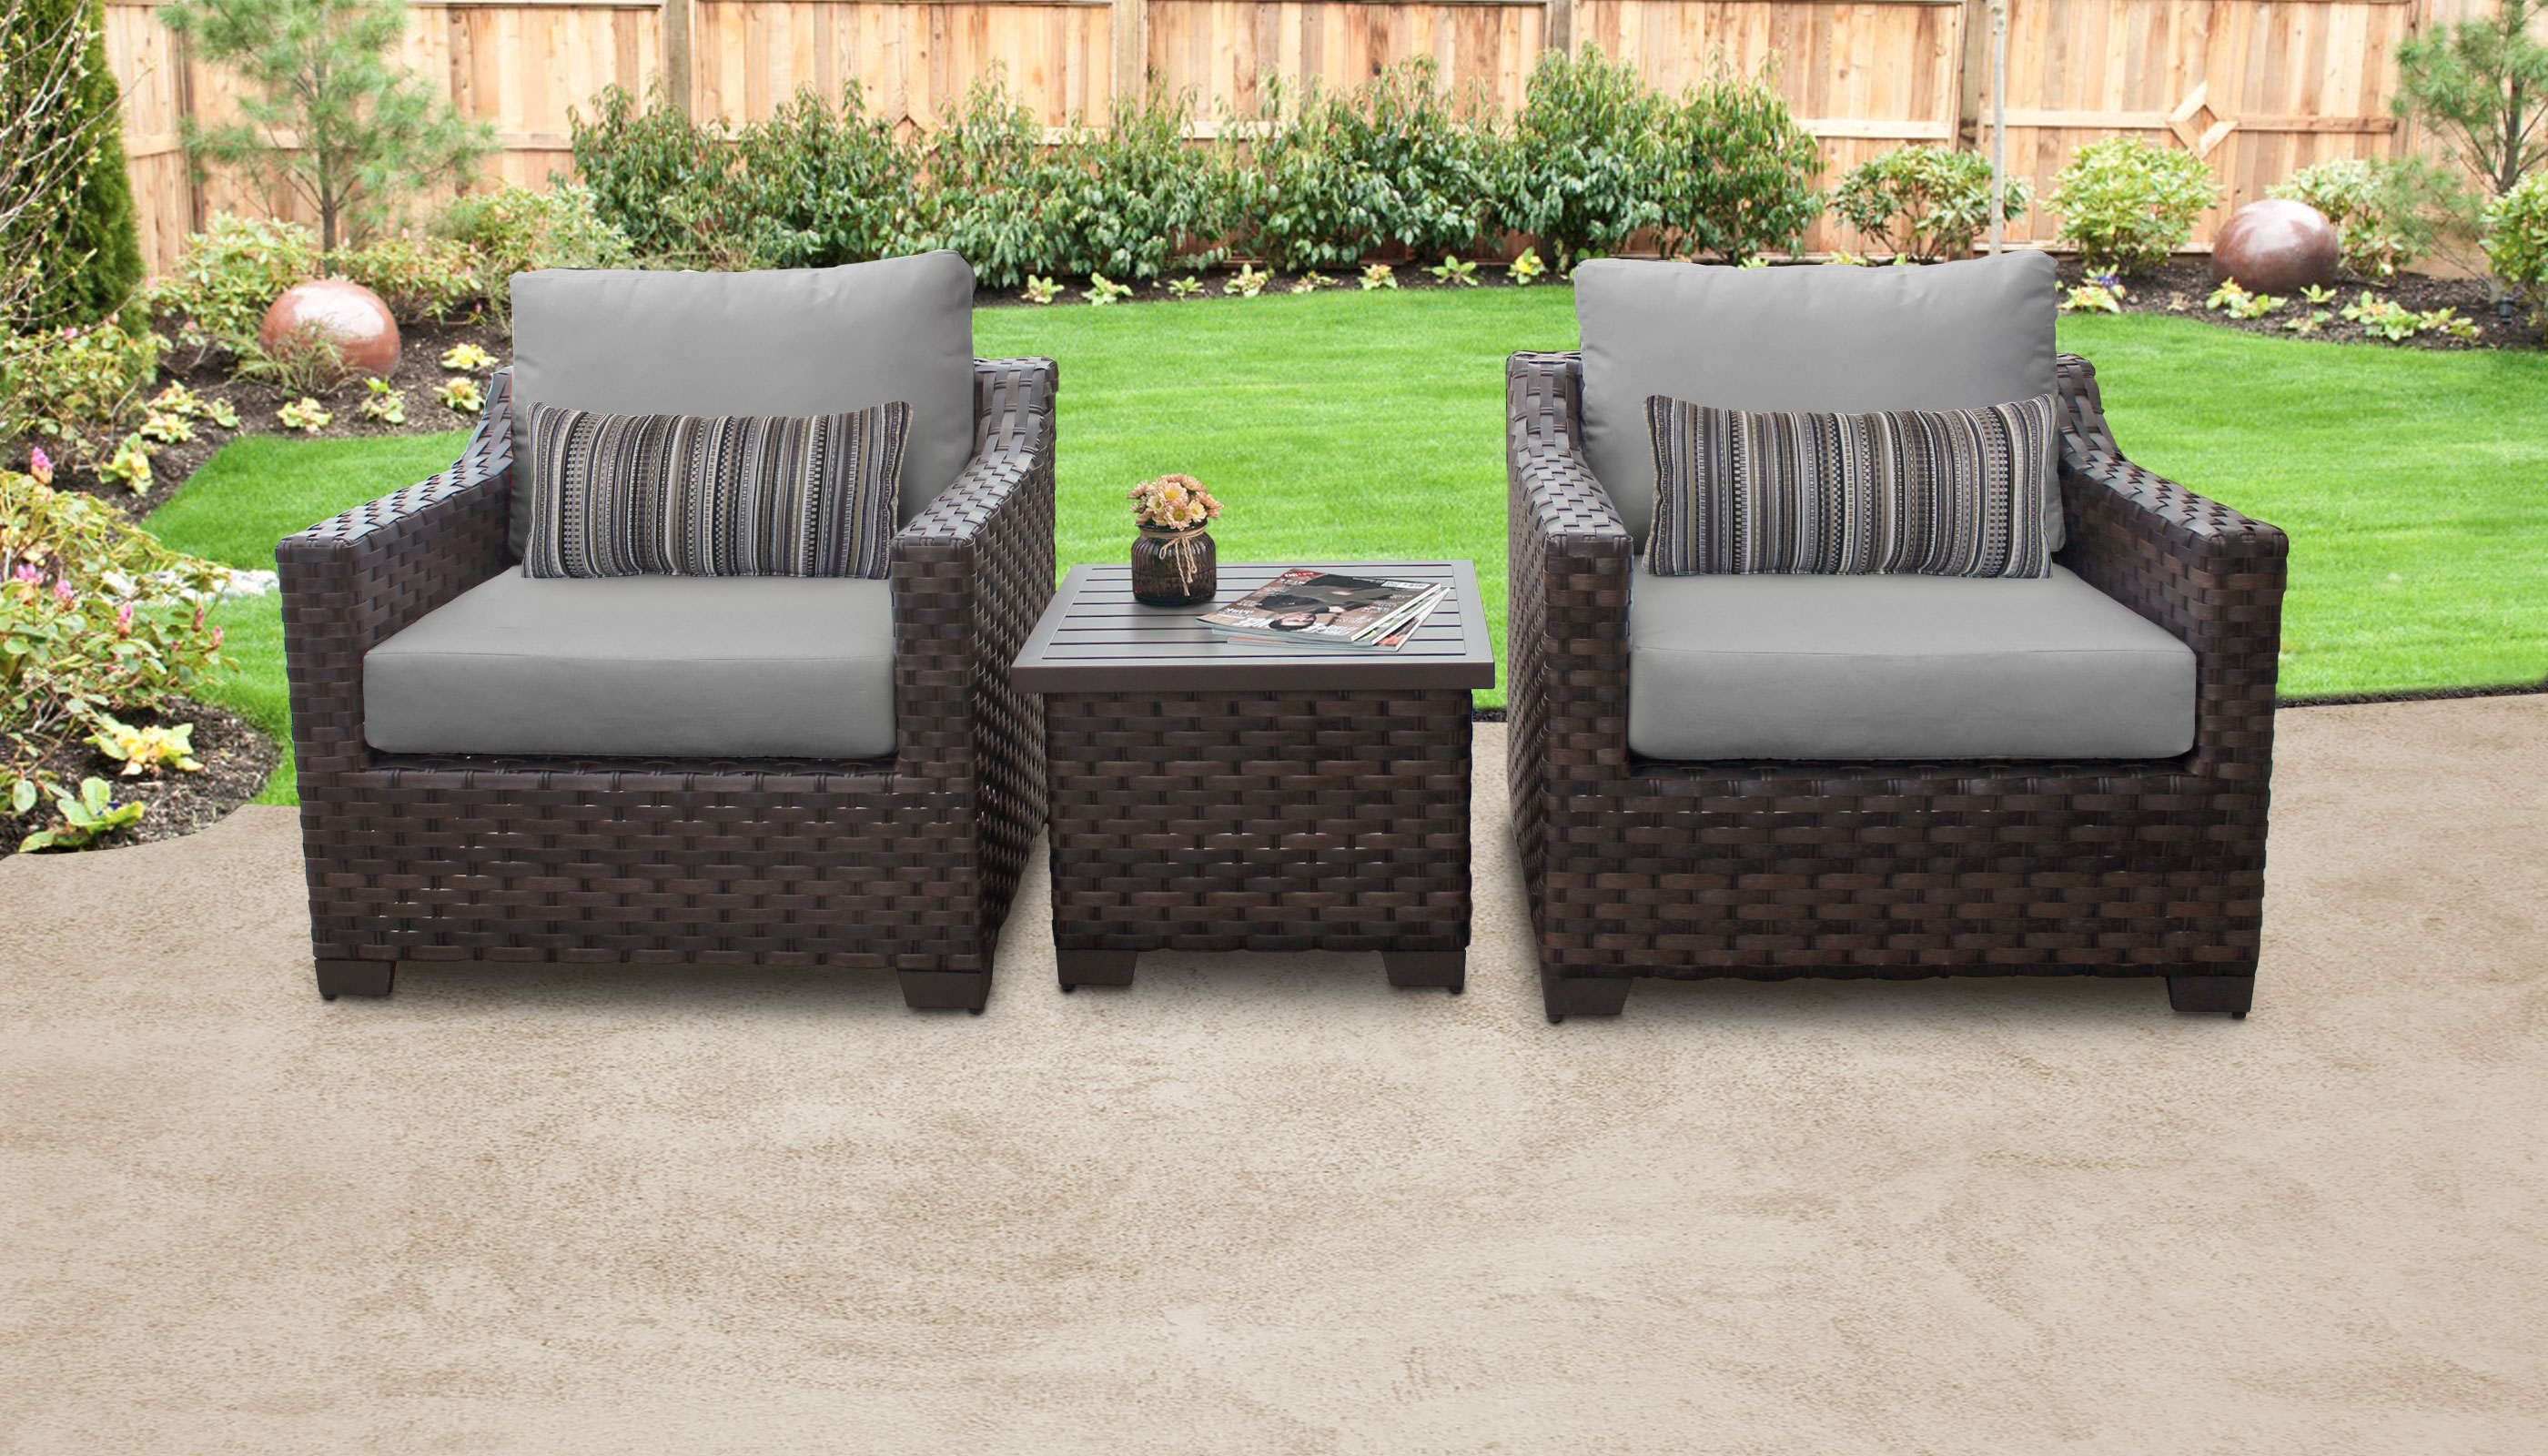 Newest 3 Piece Patio Lounger Sets Pertaining To River 3 Piece Outdoor Wicker Patio Furniture Set 03A (View 16 of 25)